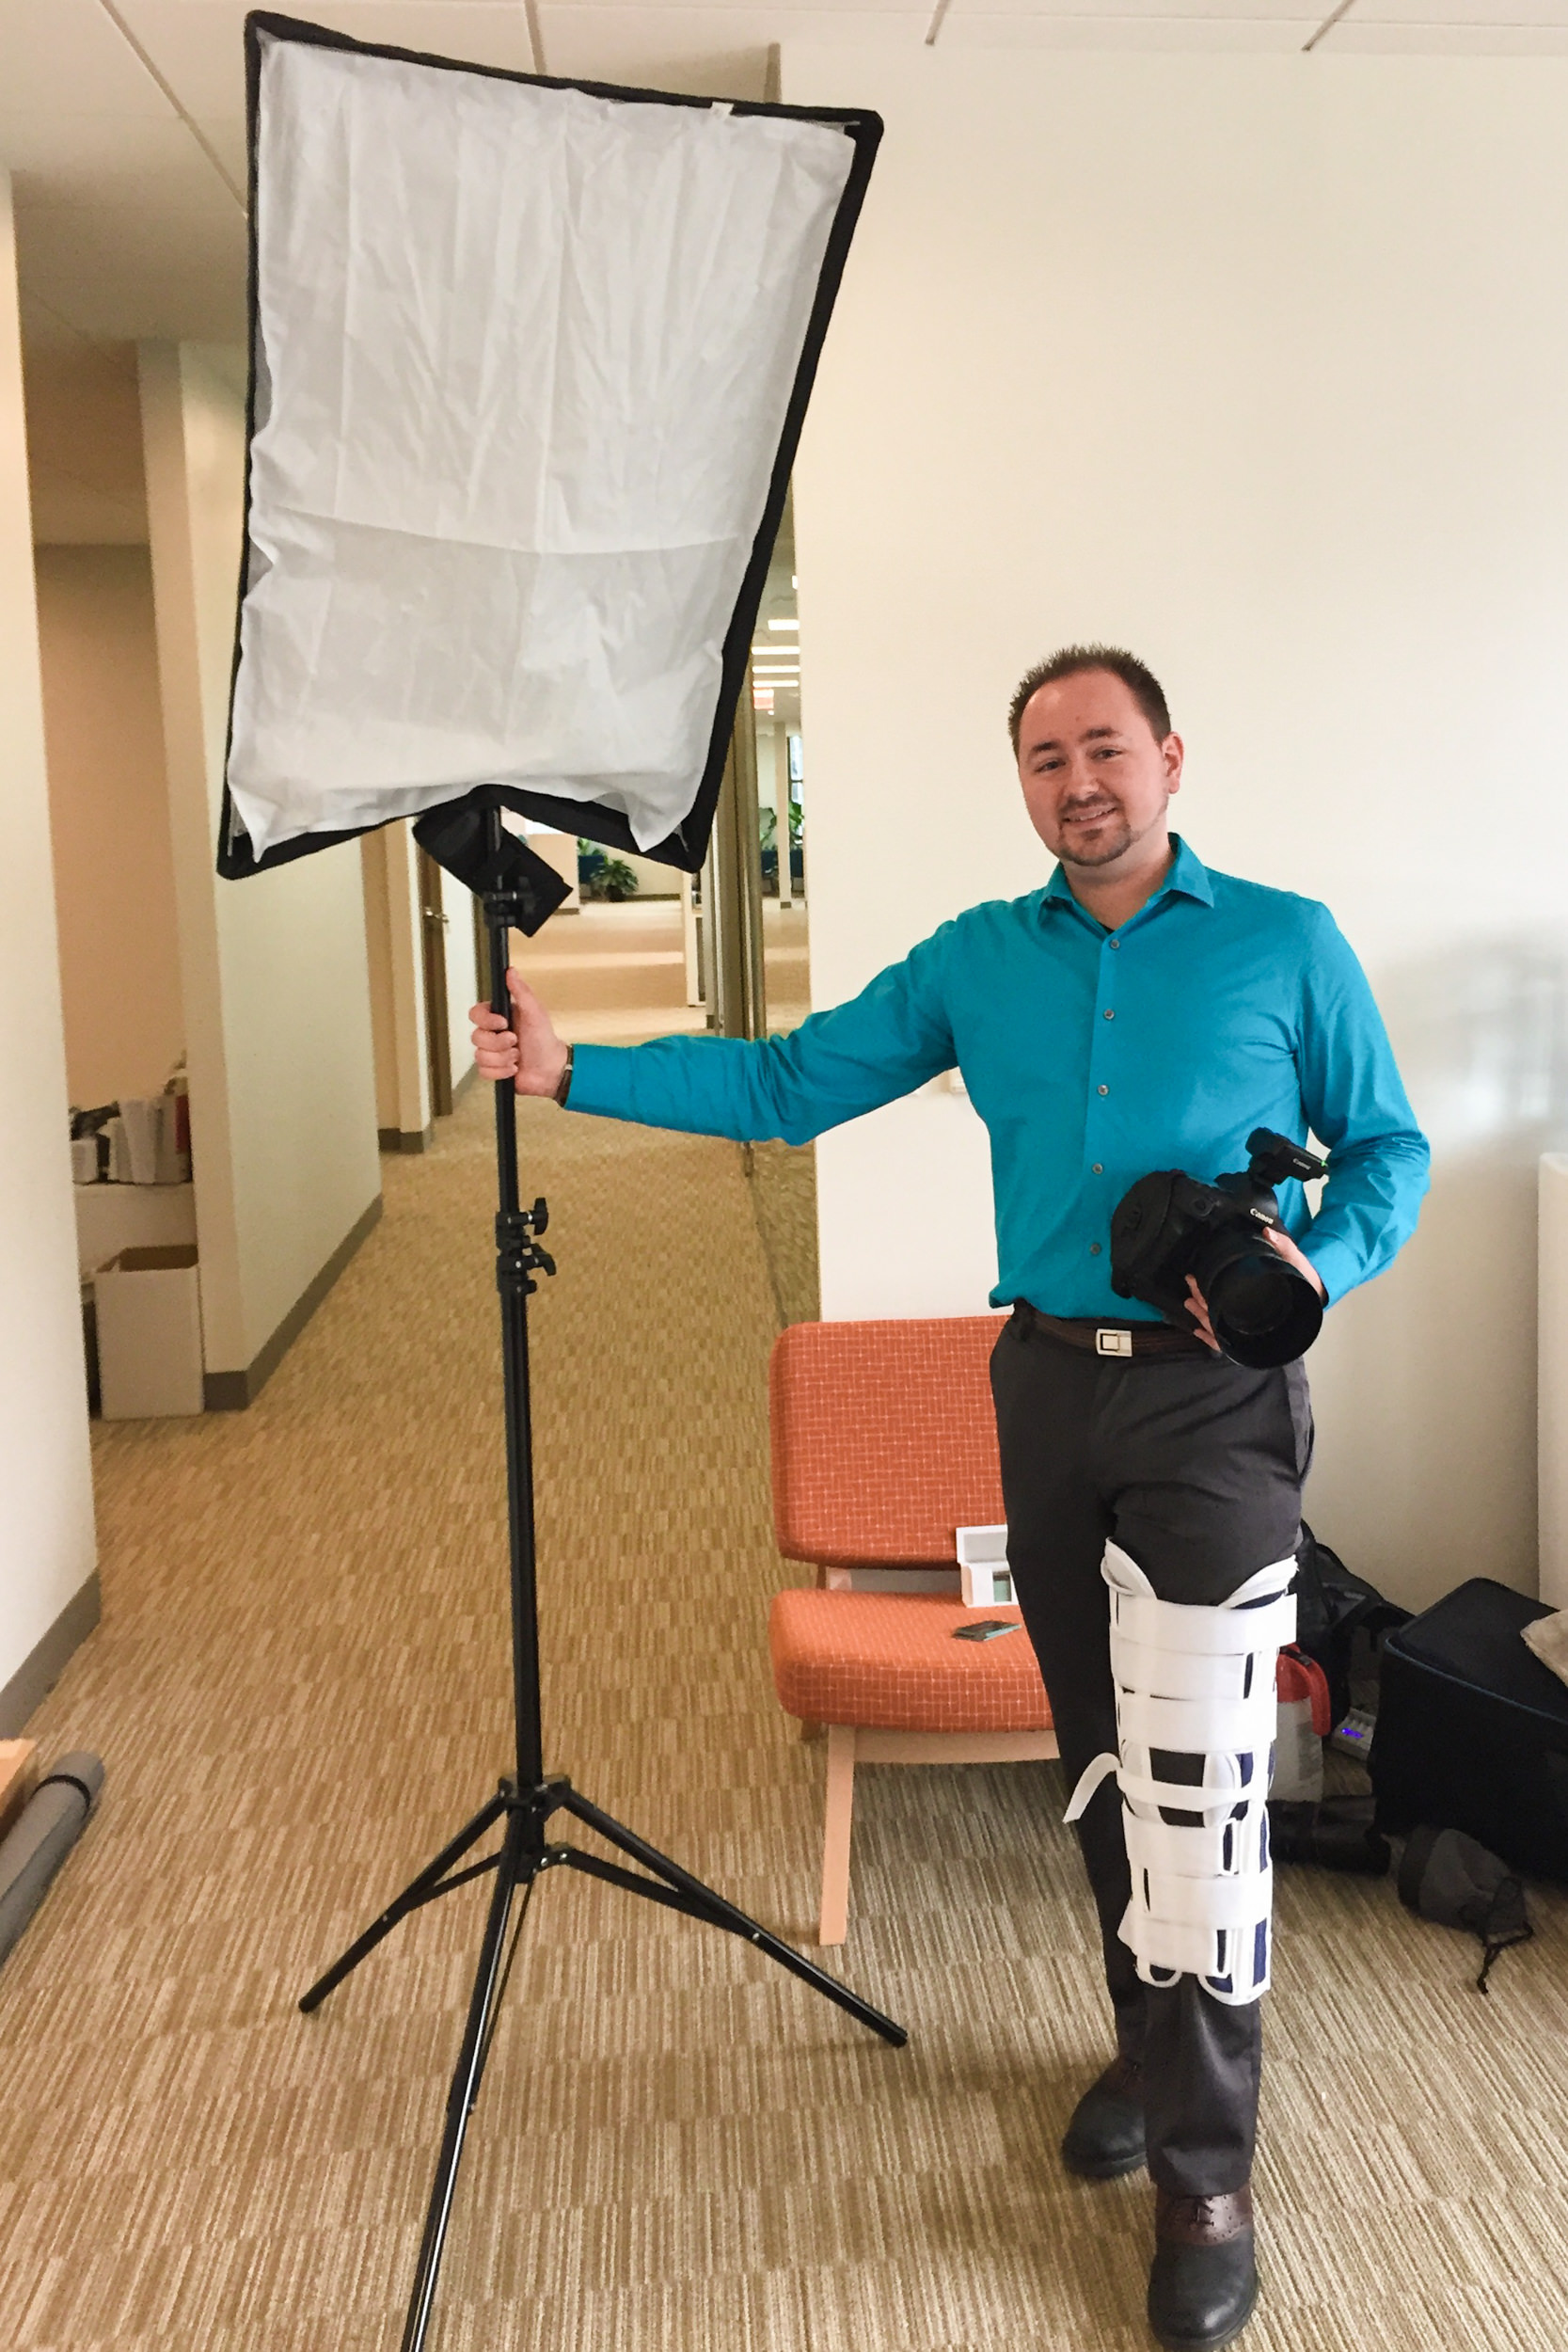 "Myself wearing a knee immobilizer at a portrait photoshoot two days after my initial knee injury.  The next day I would meet my orthopedist and find out the extent of the damage.  The doctor told me I was truly lucky that I'd only torn one ligament and had no other damage; the MRI showed no loose bodies, no damaged cartilage, and no torn menisci; all extremely common injuries with the type of fall and injury I experienced, but was able to avoid from sheer luck.  In October, later in the year, I would undergo a successful MPFL reconstruction surgery to stabilize the kneecap and prevent future dislocations, instability, and additional damage.  While this picture may be a personal low point ironically placed in a ""Best of"" post, this was a life-altering event, and more than qualifies in this ""Year in Review."""